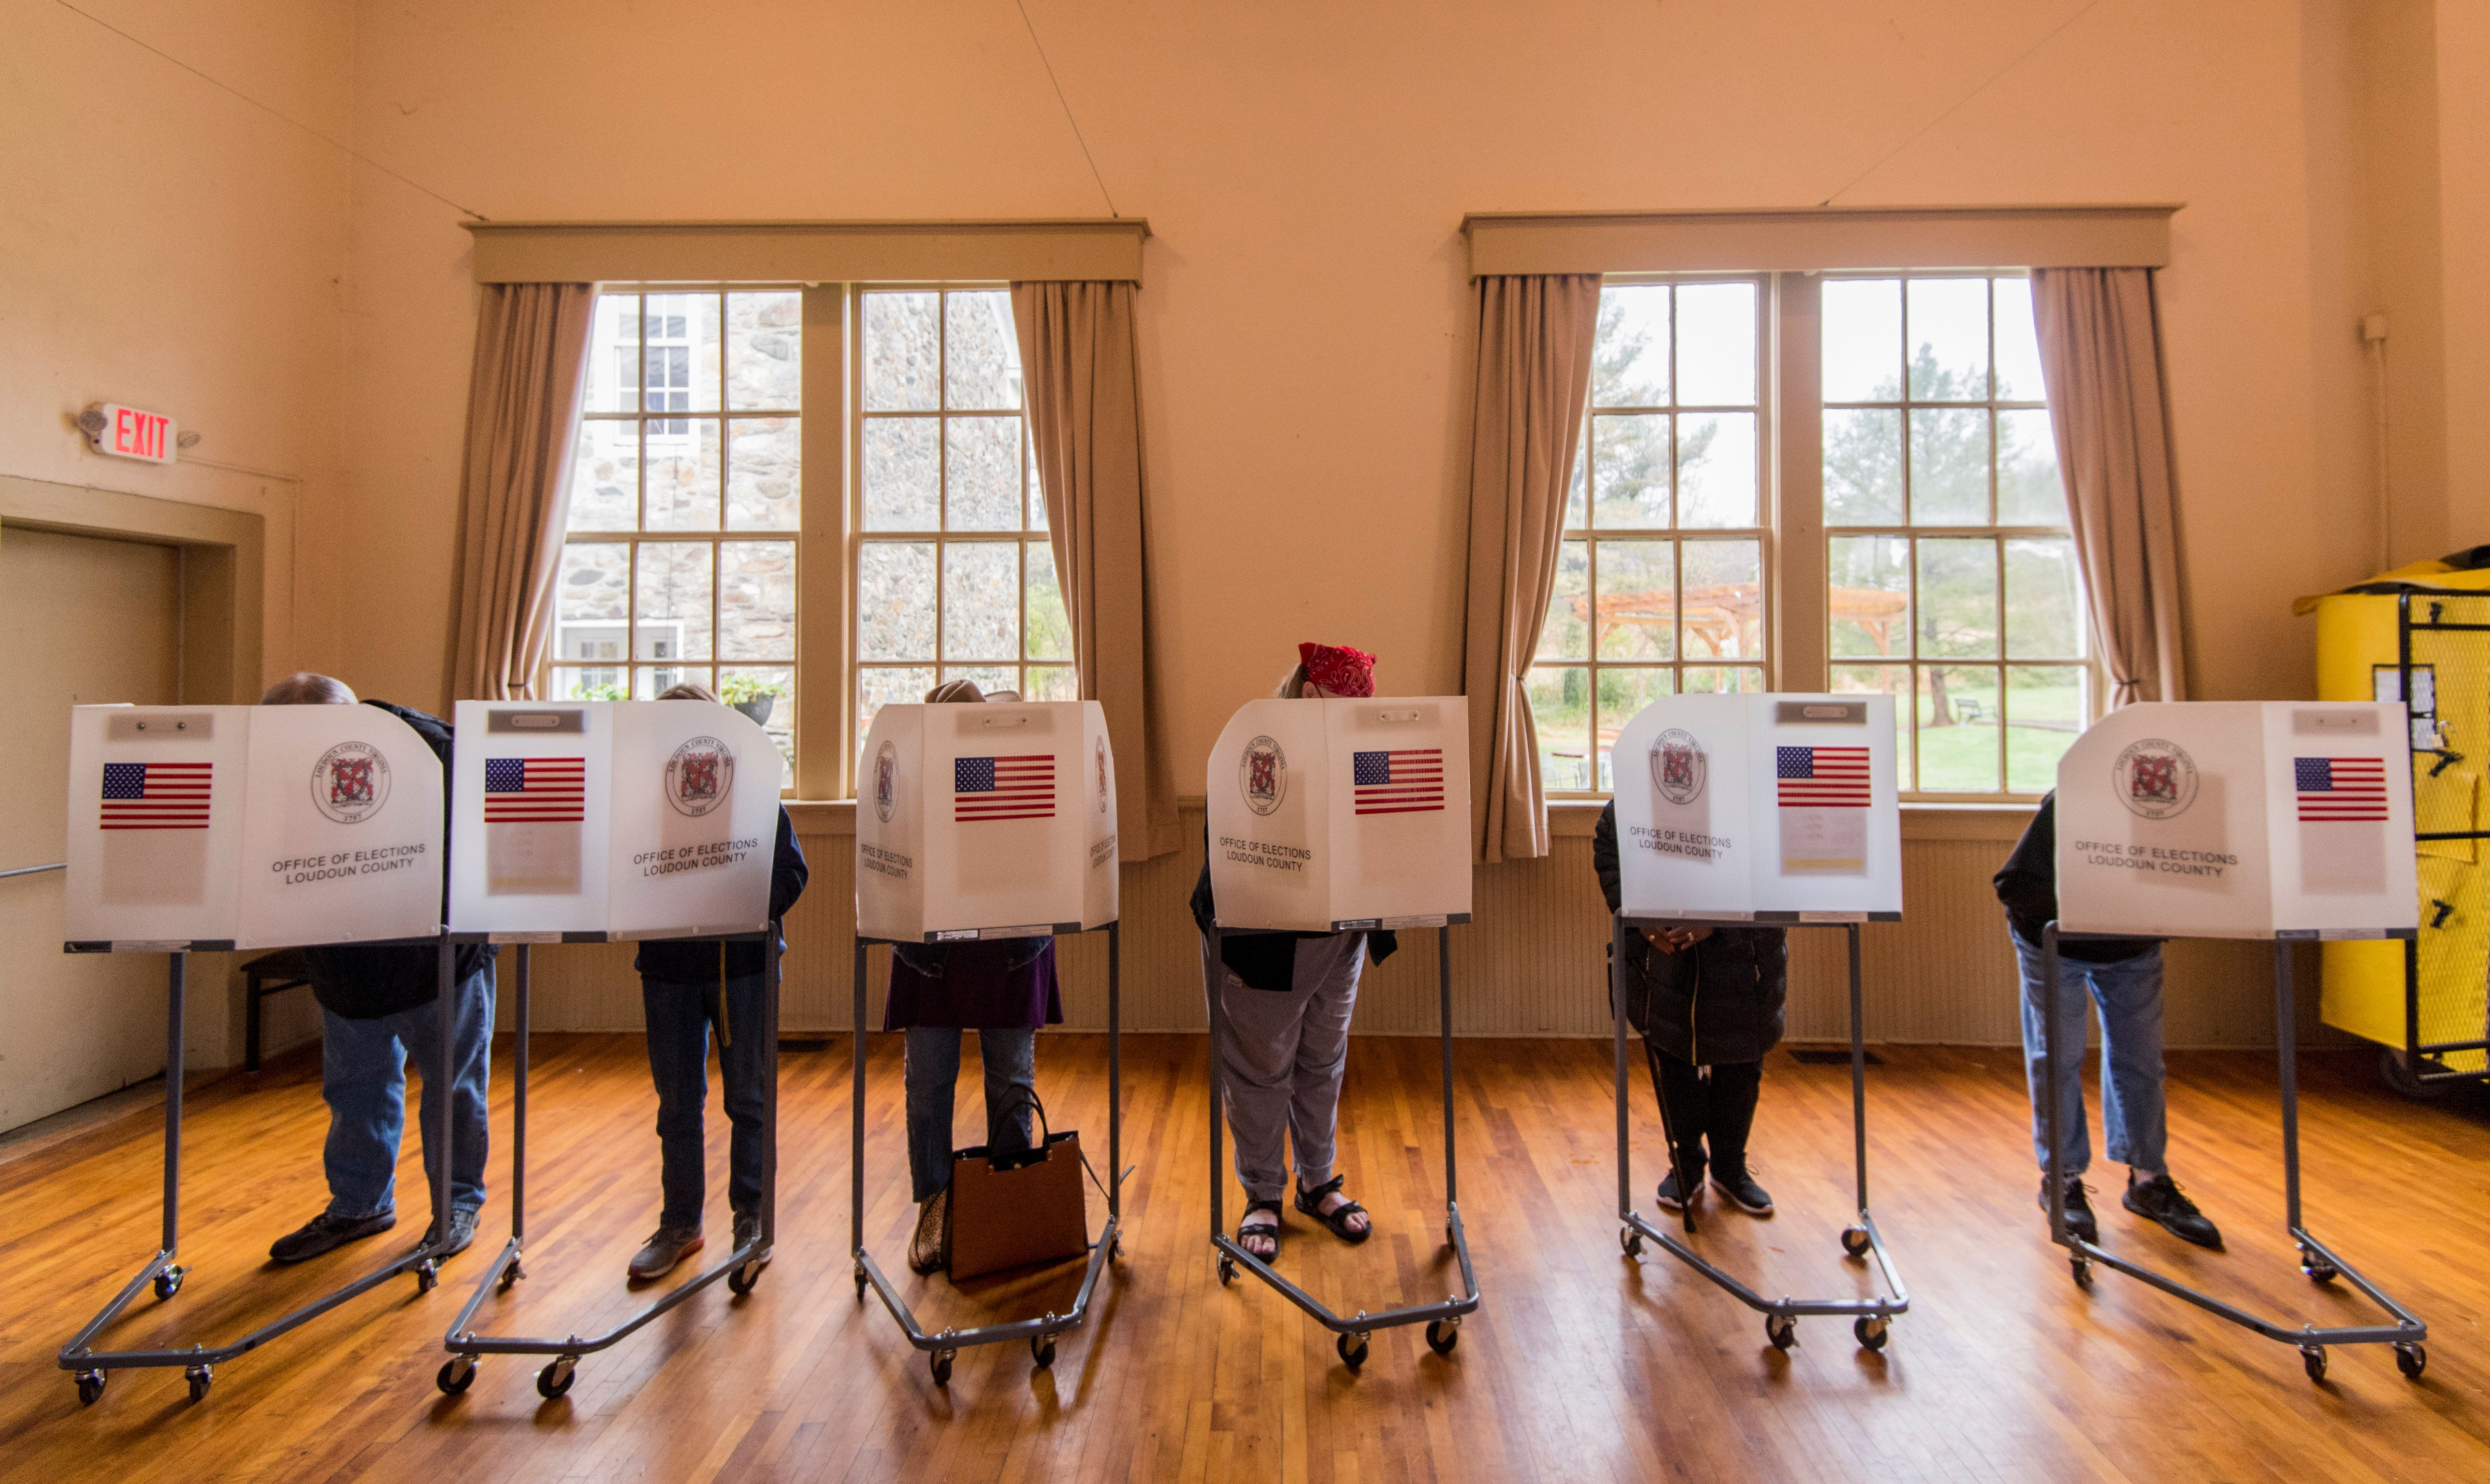 UNITED STATES - NOVEMBER 6: Voters fill out their ballots at the Old Stone School polling location in Hillsboro, Va., on Election Day, Nov. 6, 2018. (Photo By Bill Clark/CQ Roll Call)